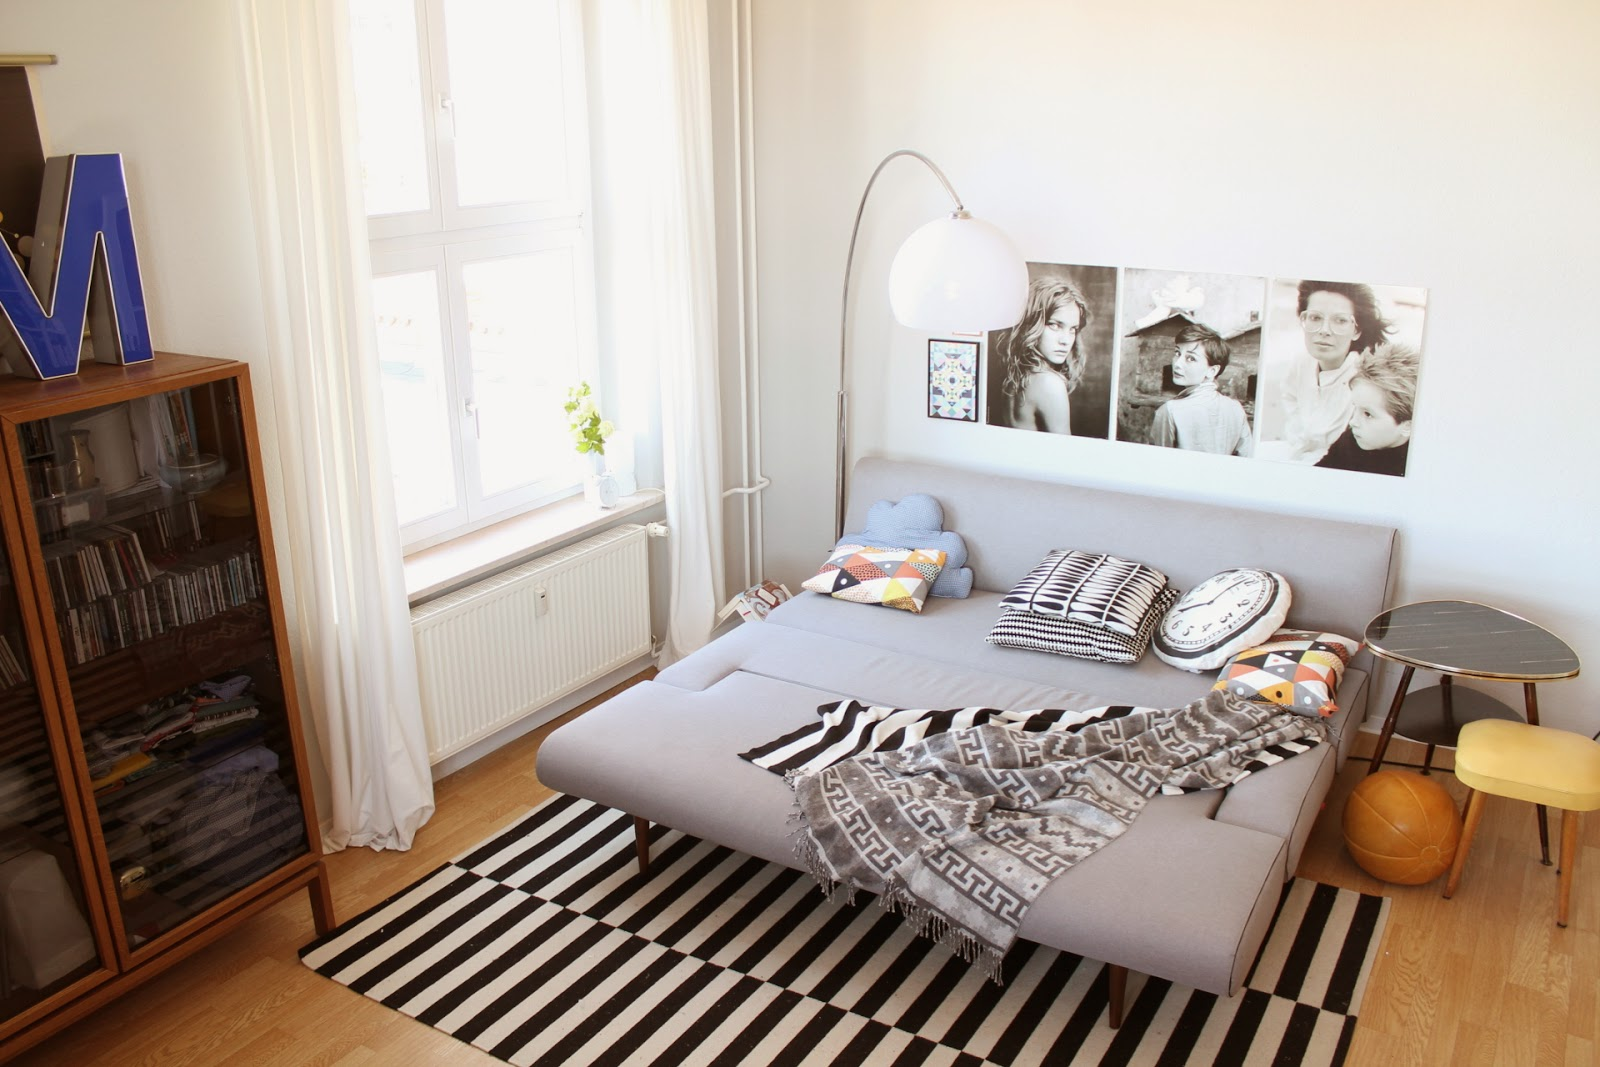 britta bloggt zu besuch diesmal bei marlene. Black Bedroom Furniture Sets. Home Design Ideas